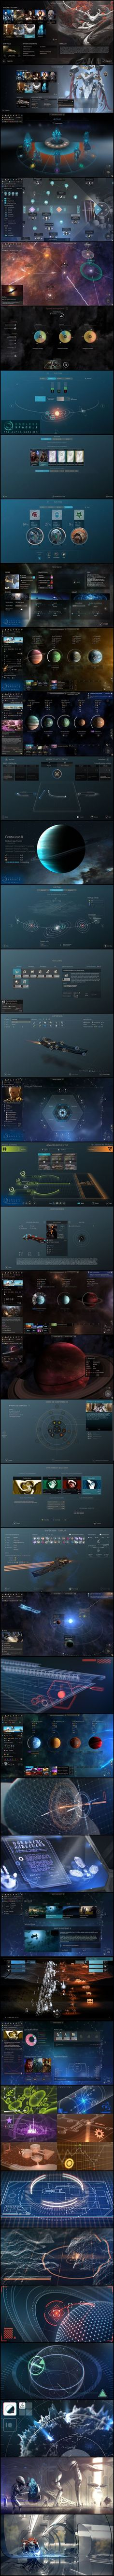 Endless Space 2 UI